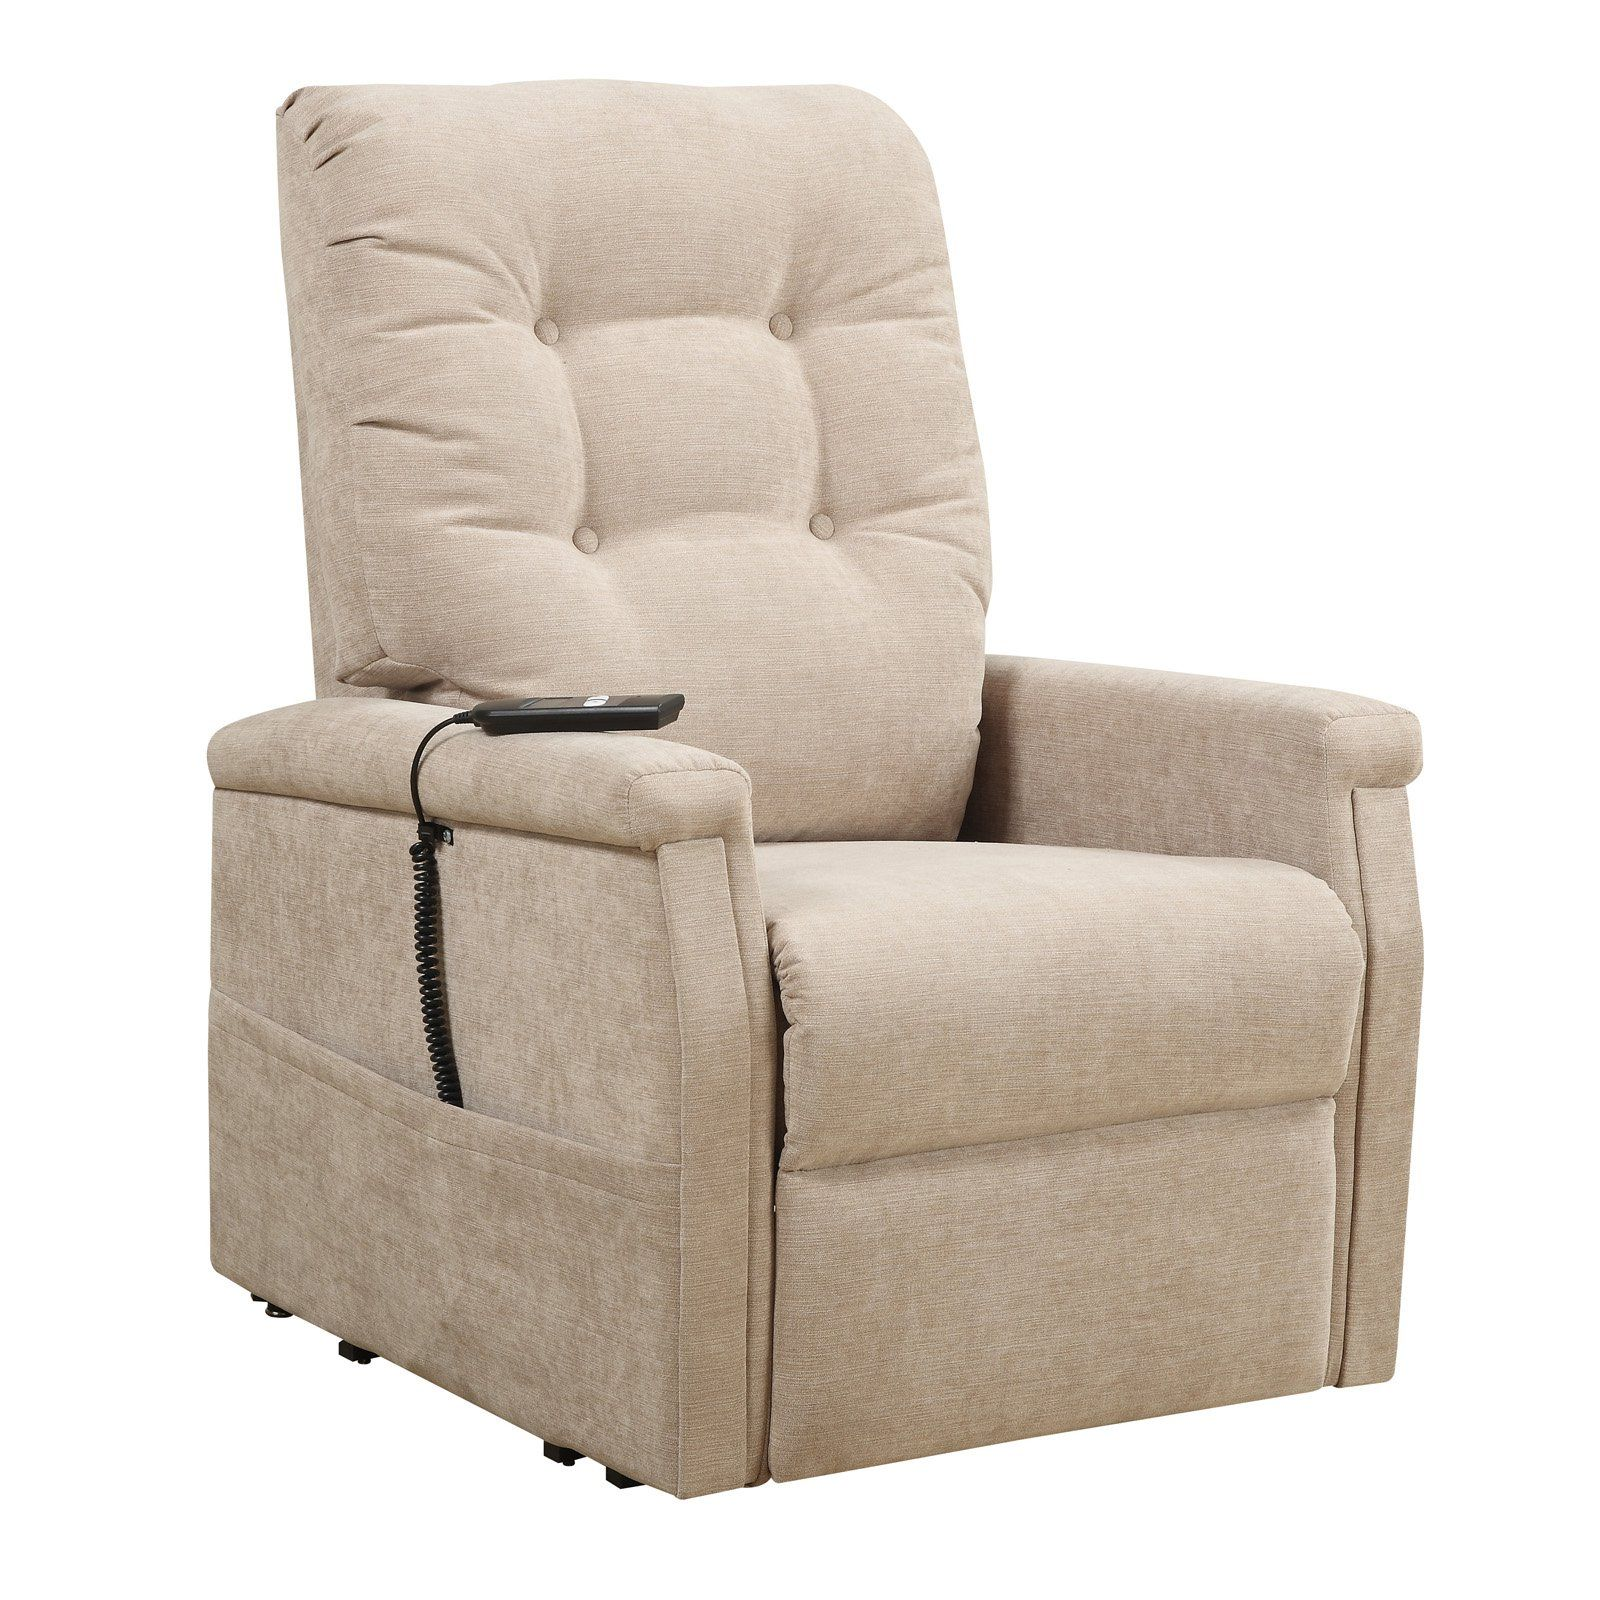 Montreal Piedra Fabric Lift Chair Montreal Piedra | Lift